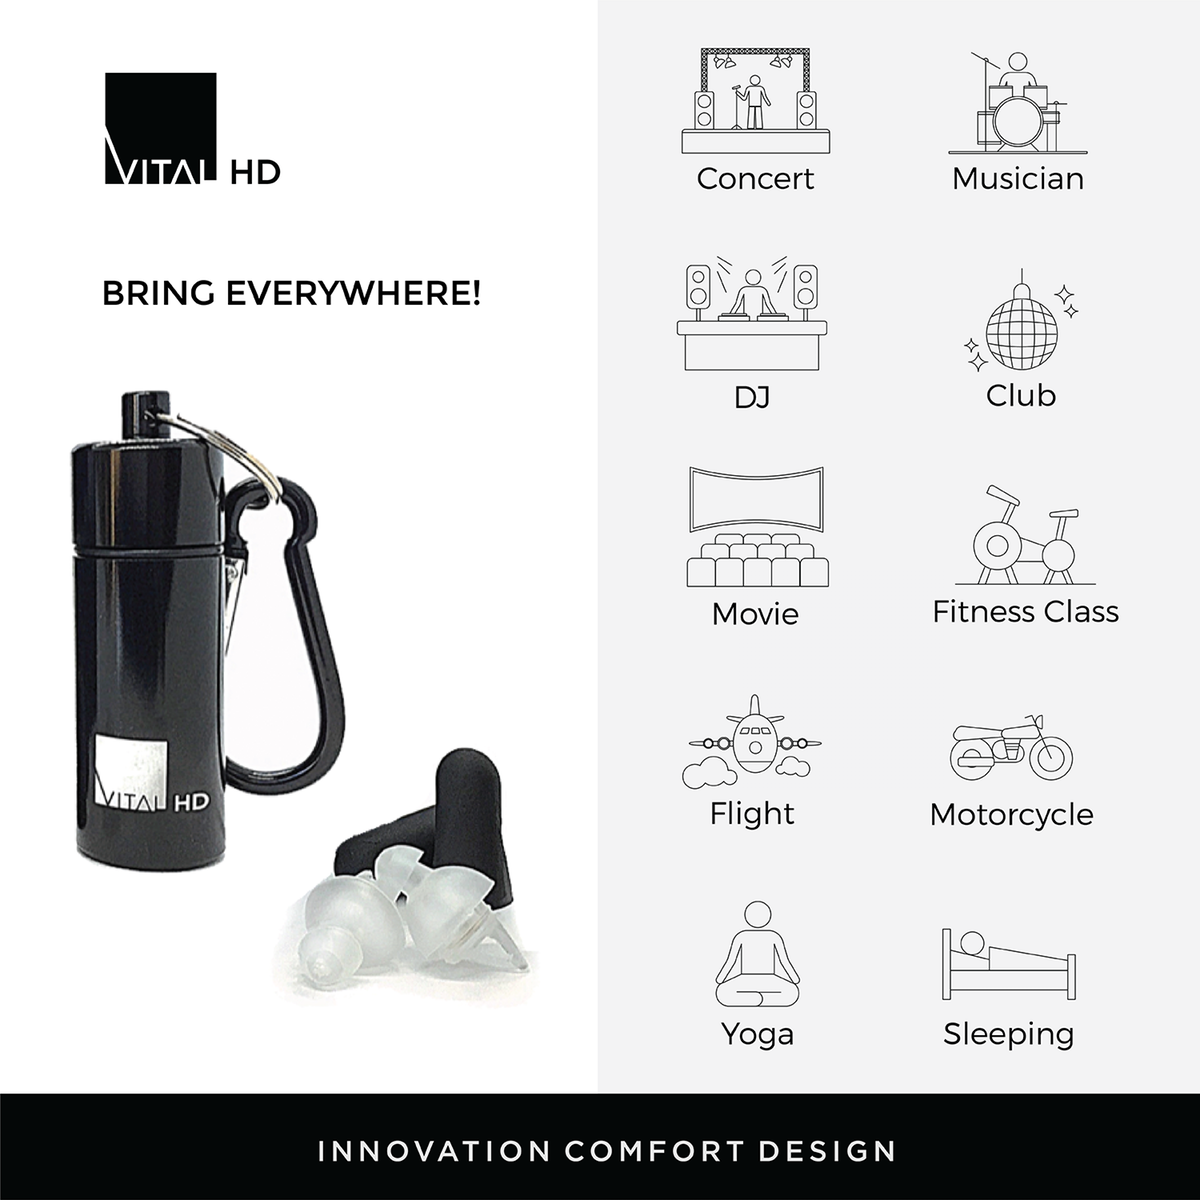 3 product infographic for Amazon listing